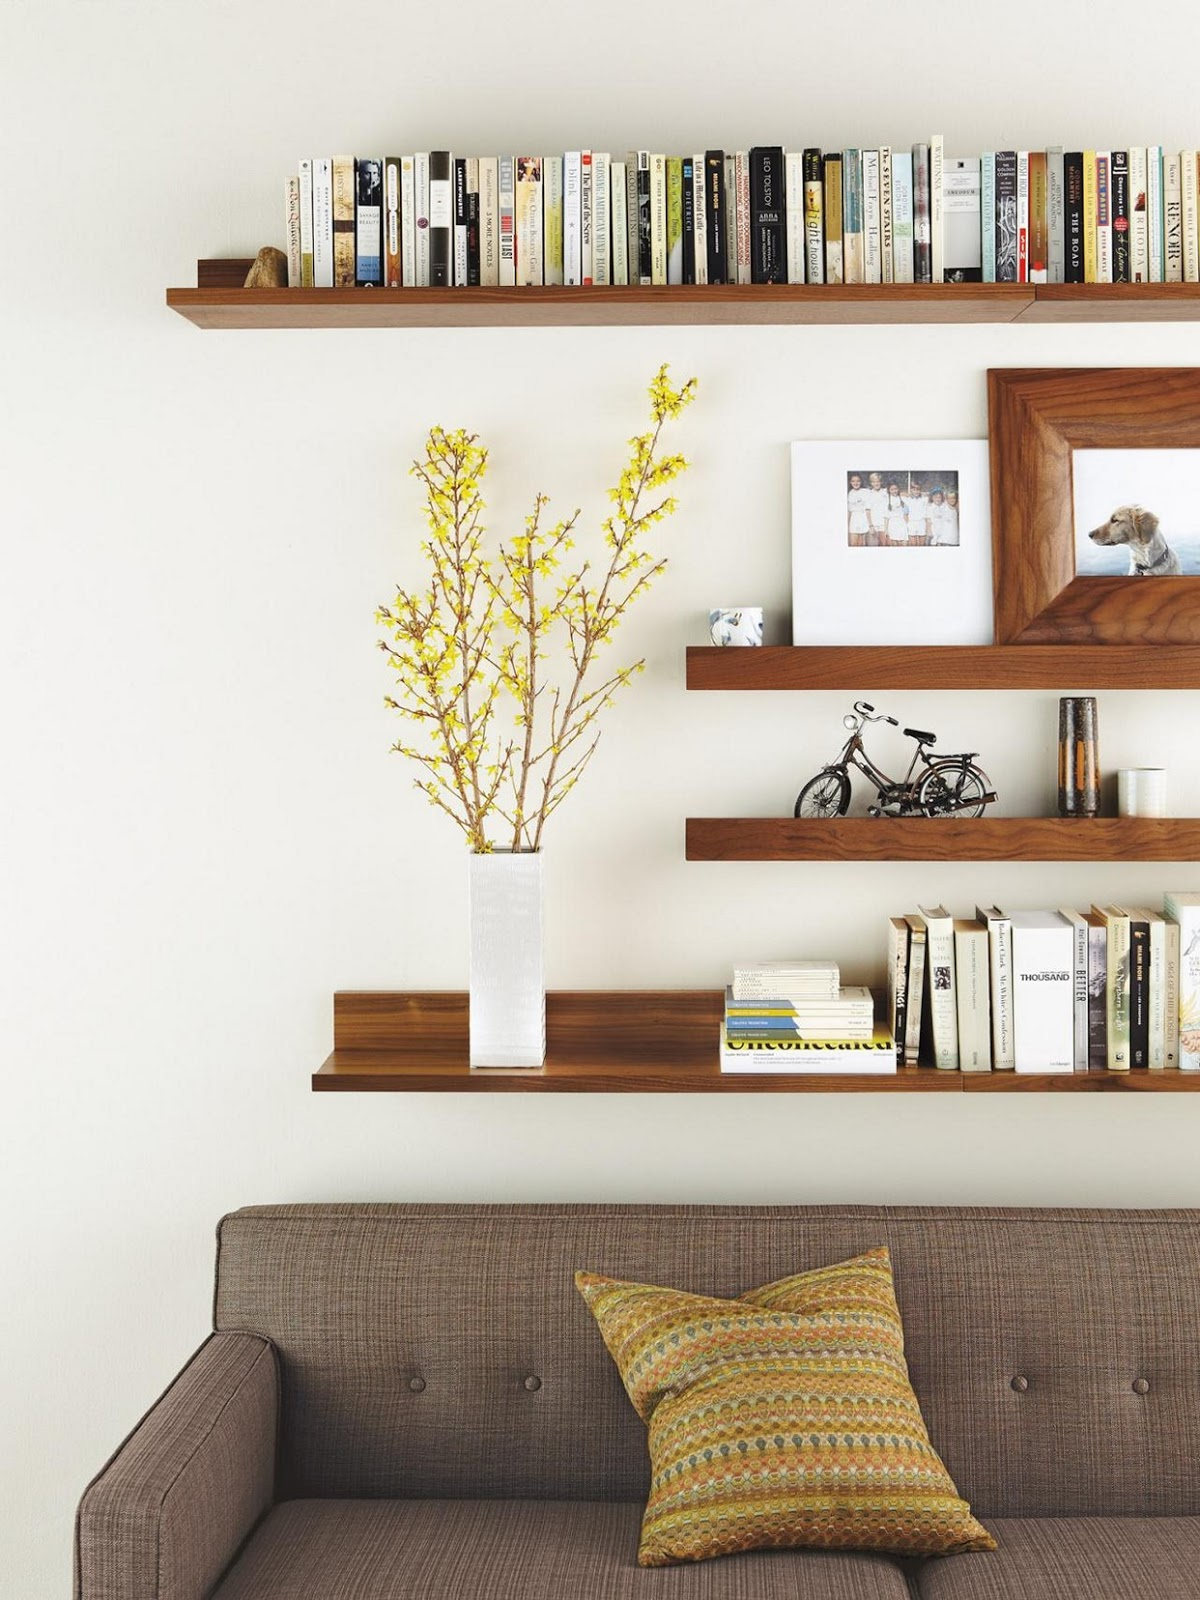 DIY%2BFunctional%2B%2526%2BStylish%2BWall%2BShelves%2BFor%2BInterior%2BHome%2BDesign%2BThat%2BYou%2527ll%2BLove%2B%25285%2529 25+ DIY Practical & Fashionable Wall Cabinets For Inside House Design That You can Love Interior